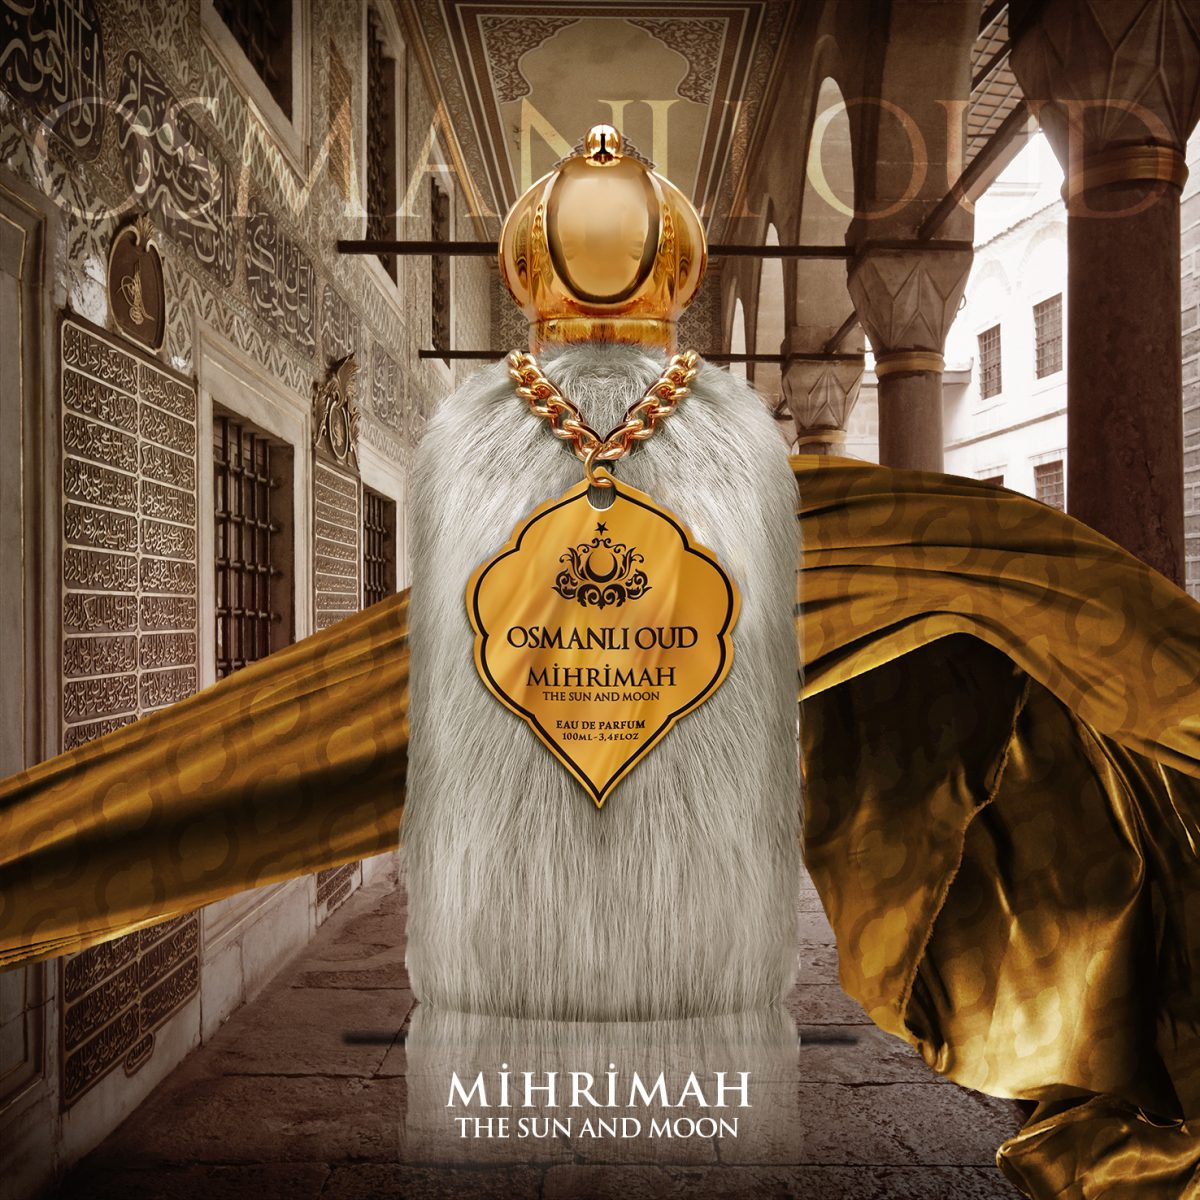 Mihrimah The Sun And Moon